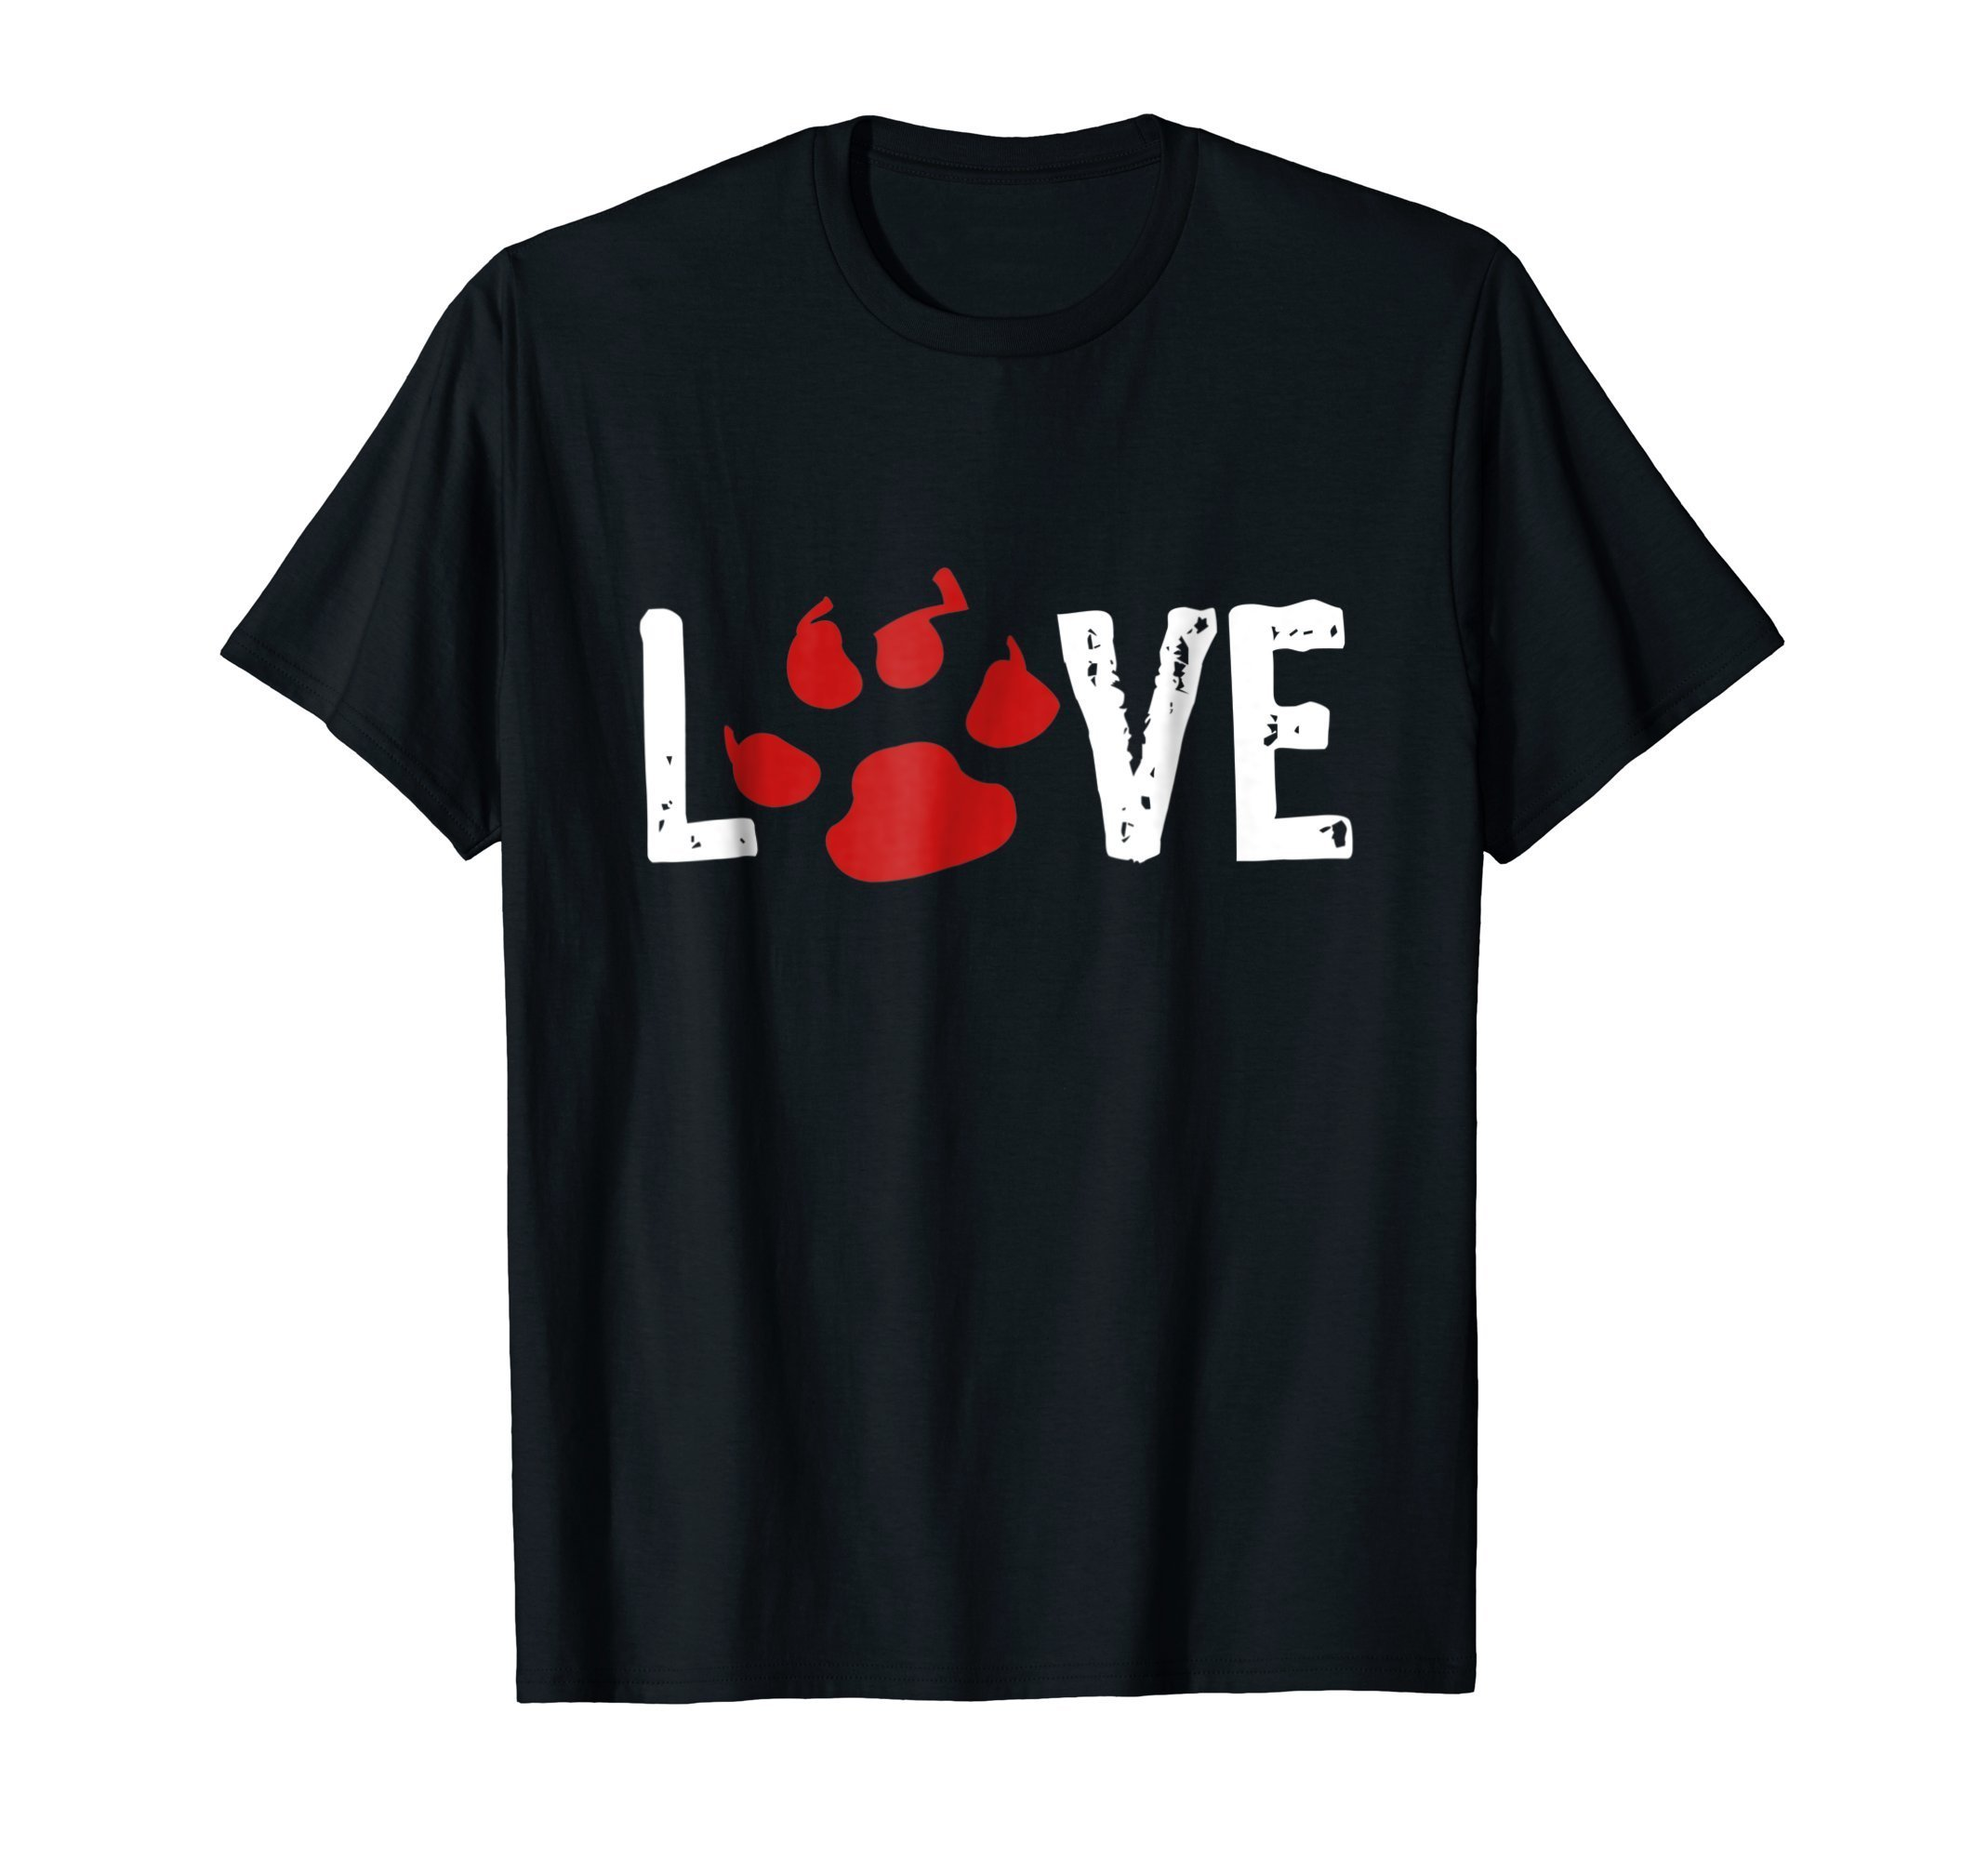 Love Animal Shirt Love Red Paw Print Cat Dog Pet Lover by Pawsitive Dog Lover Shop (Image #1)